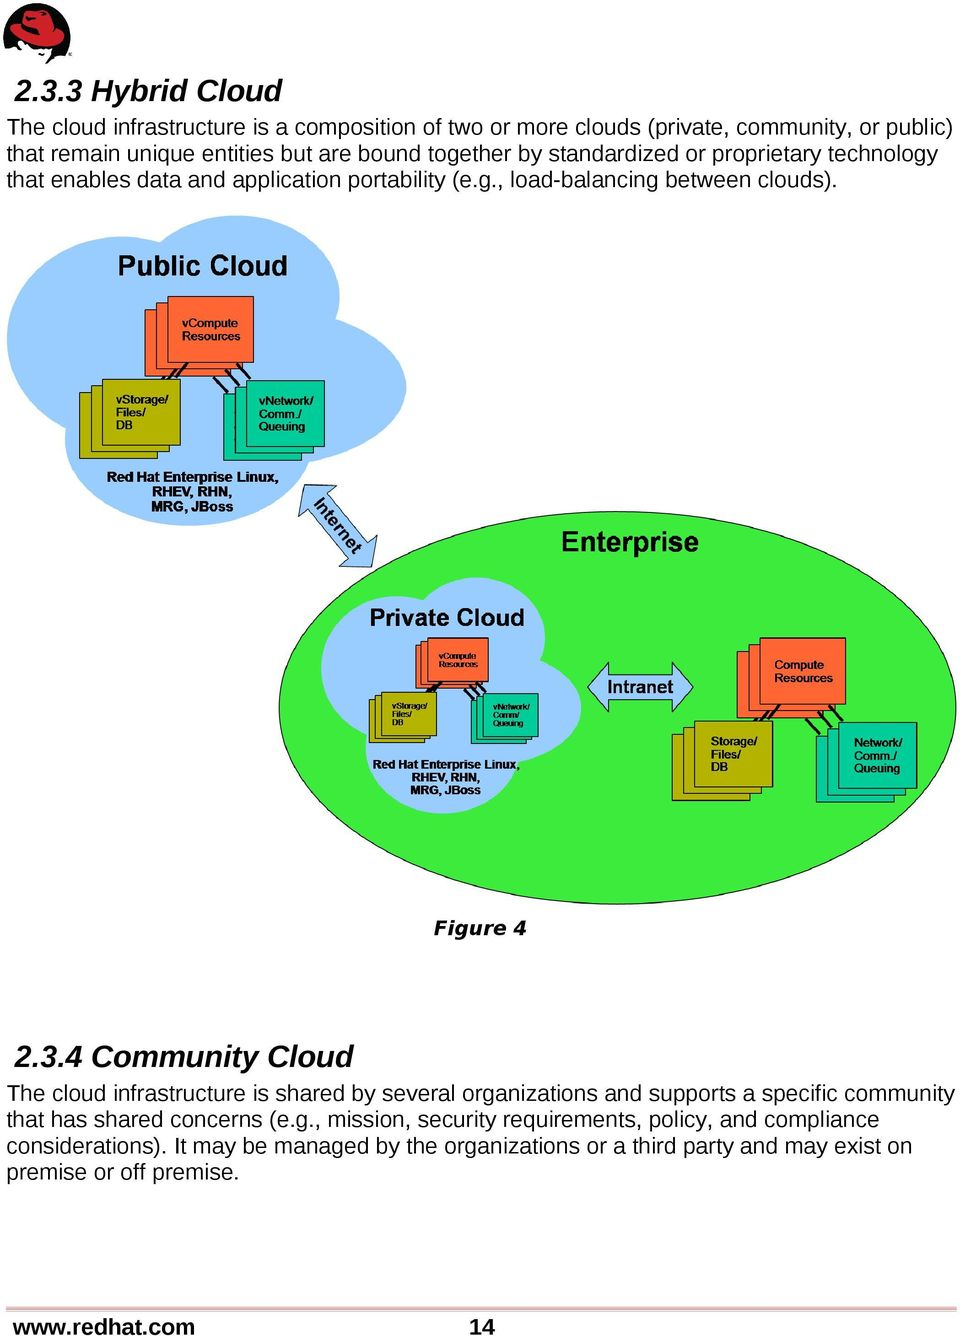 4 Community Cloud The cloud infrastructure is shared by several organizations and supports a specific community that has shared concerns (e.g., mission, security requirements, policy, and compliance considerations).